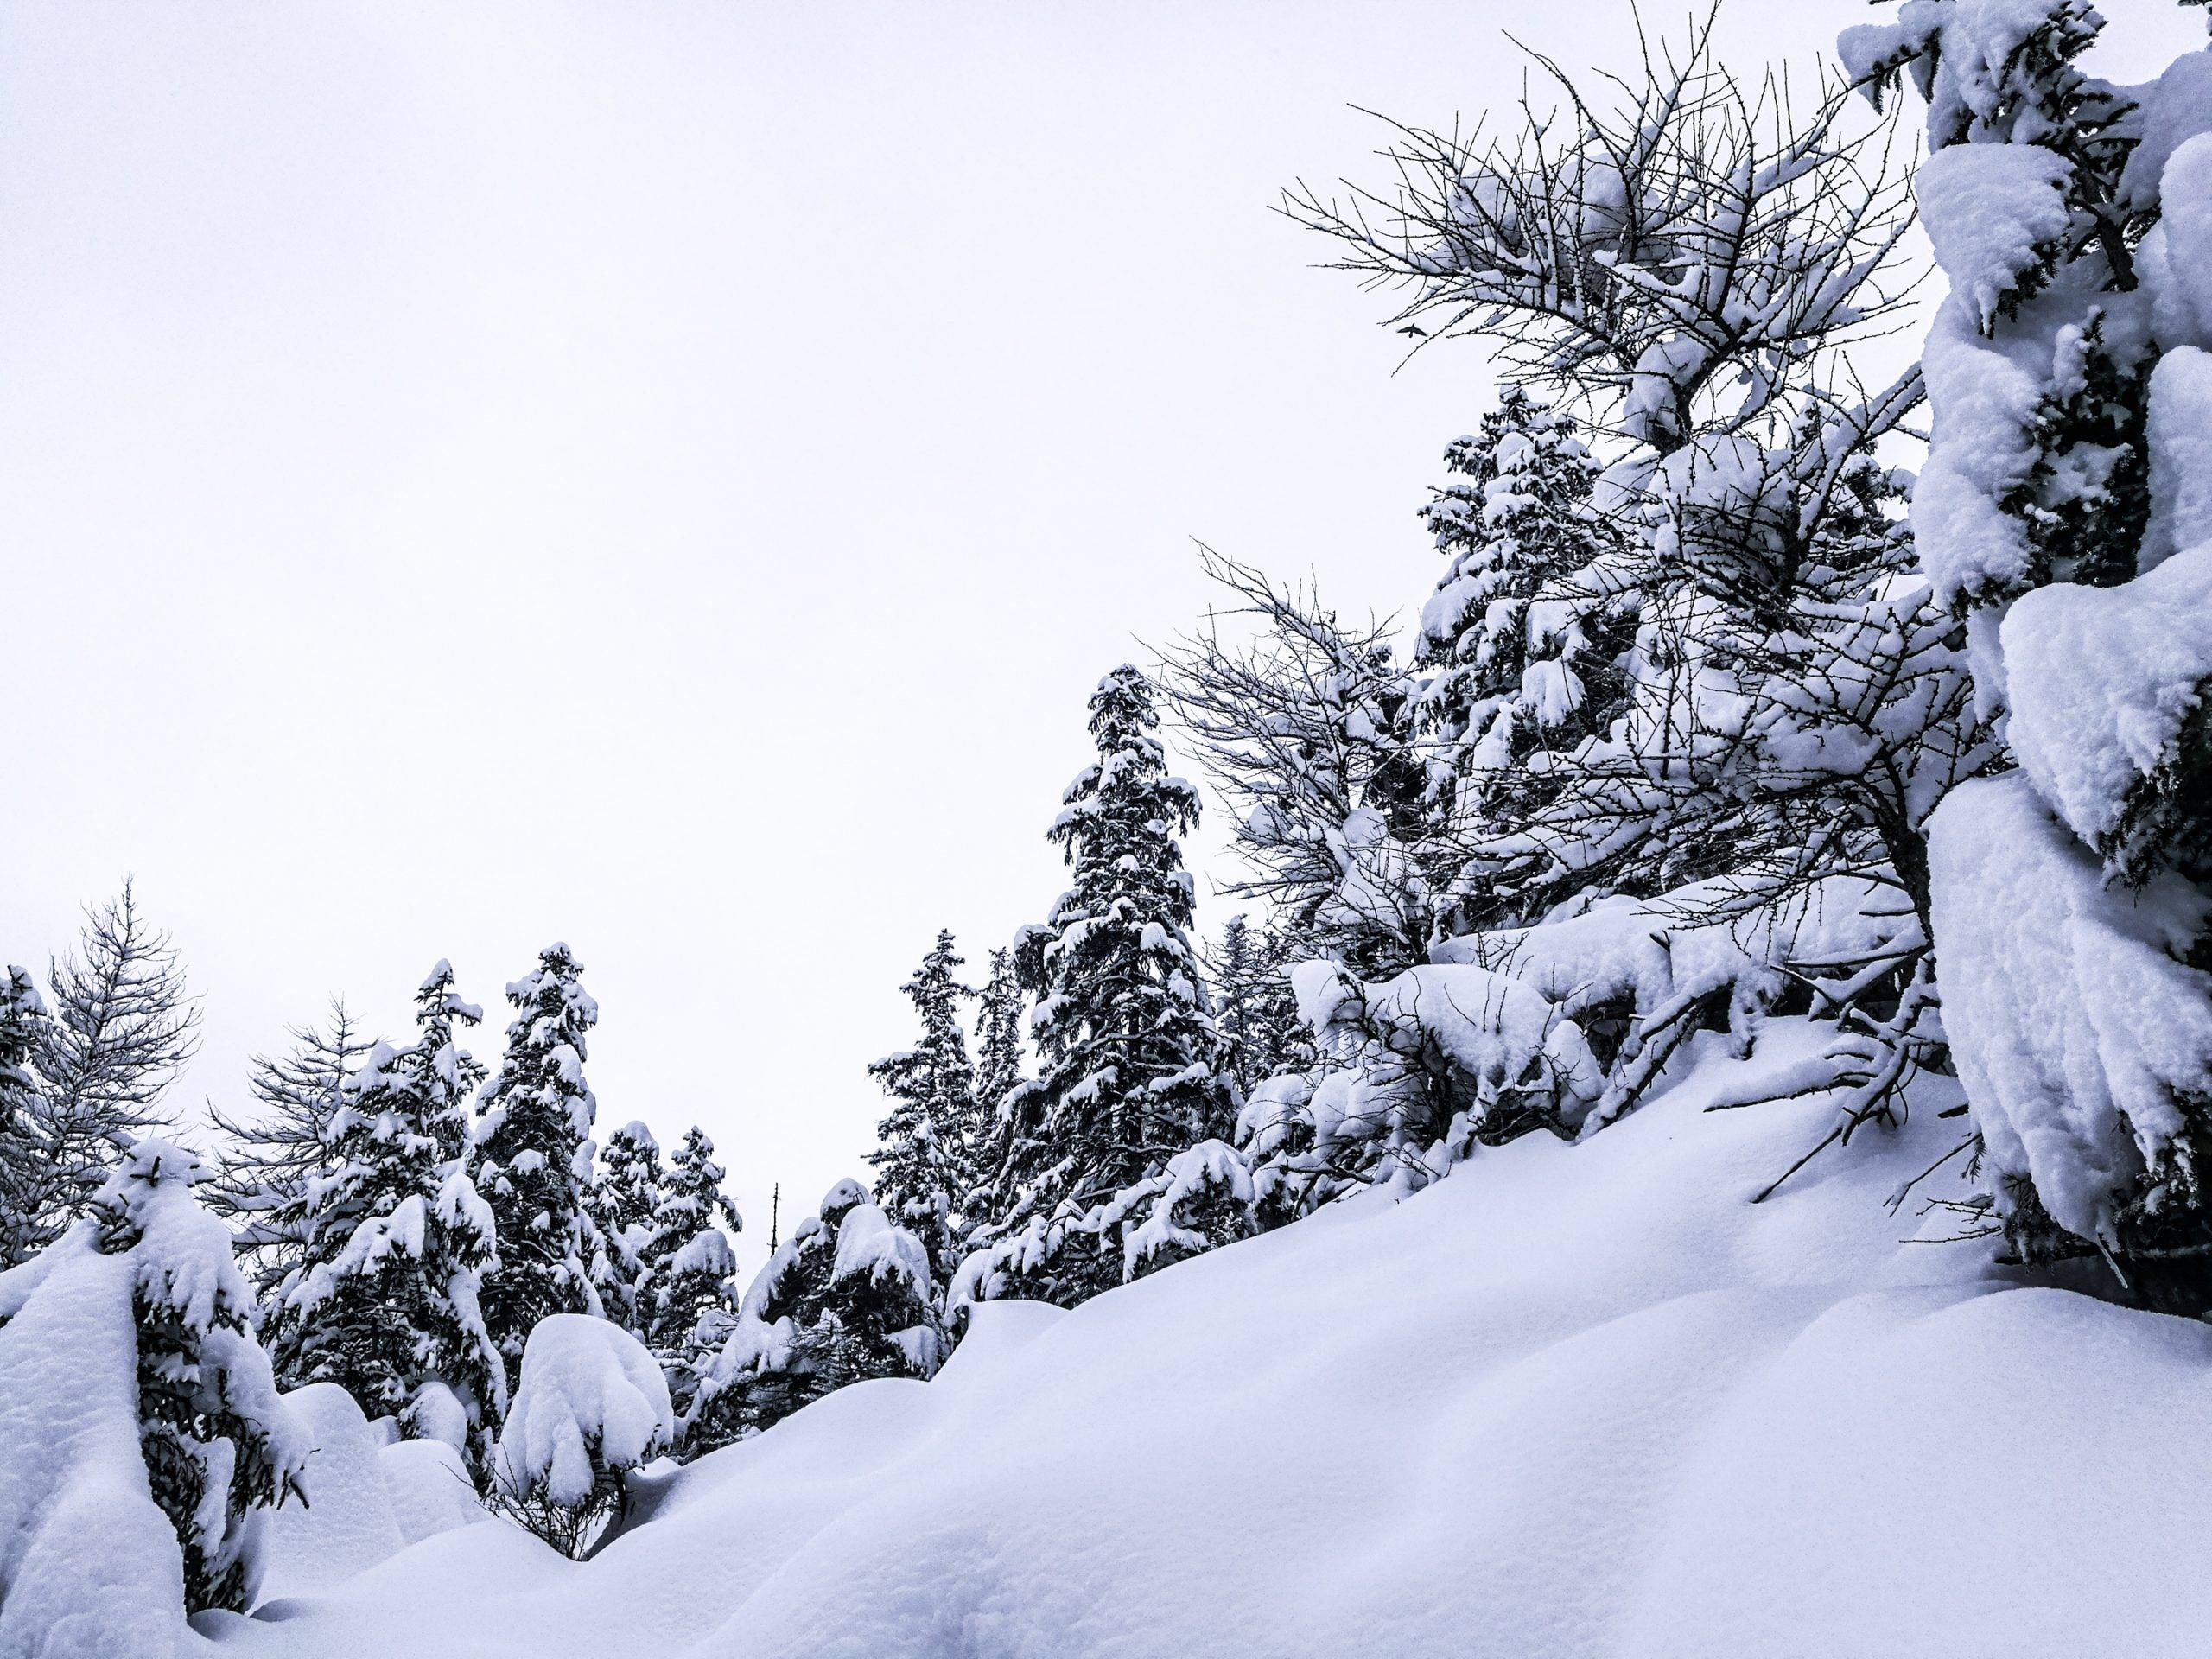 As far as anybody should be concerned, beneath this snow could be the tops of another trees. Photo by Alis Monte [CC BY-SA 4.0], via Connecting the Dots